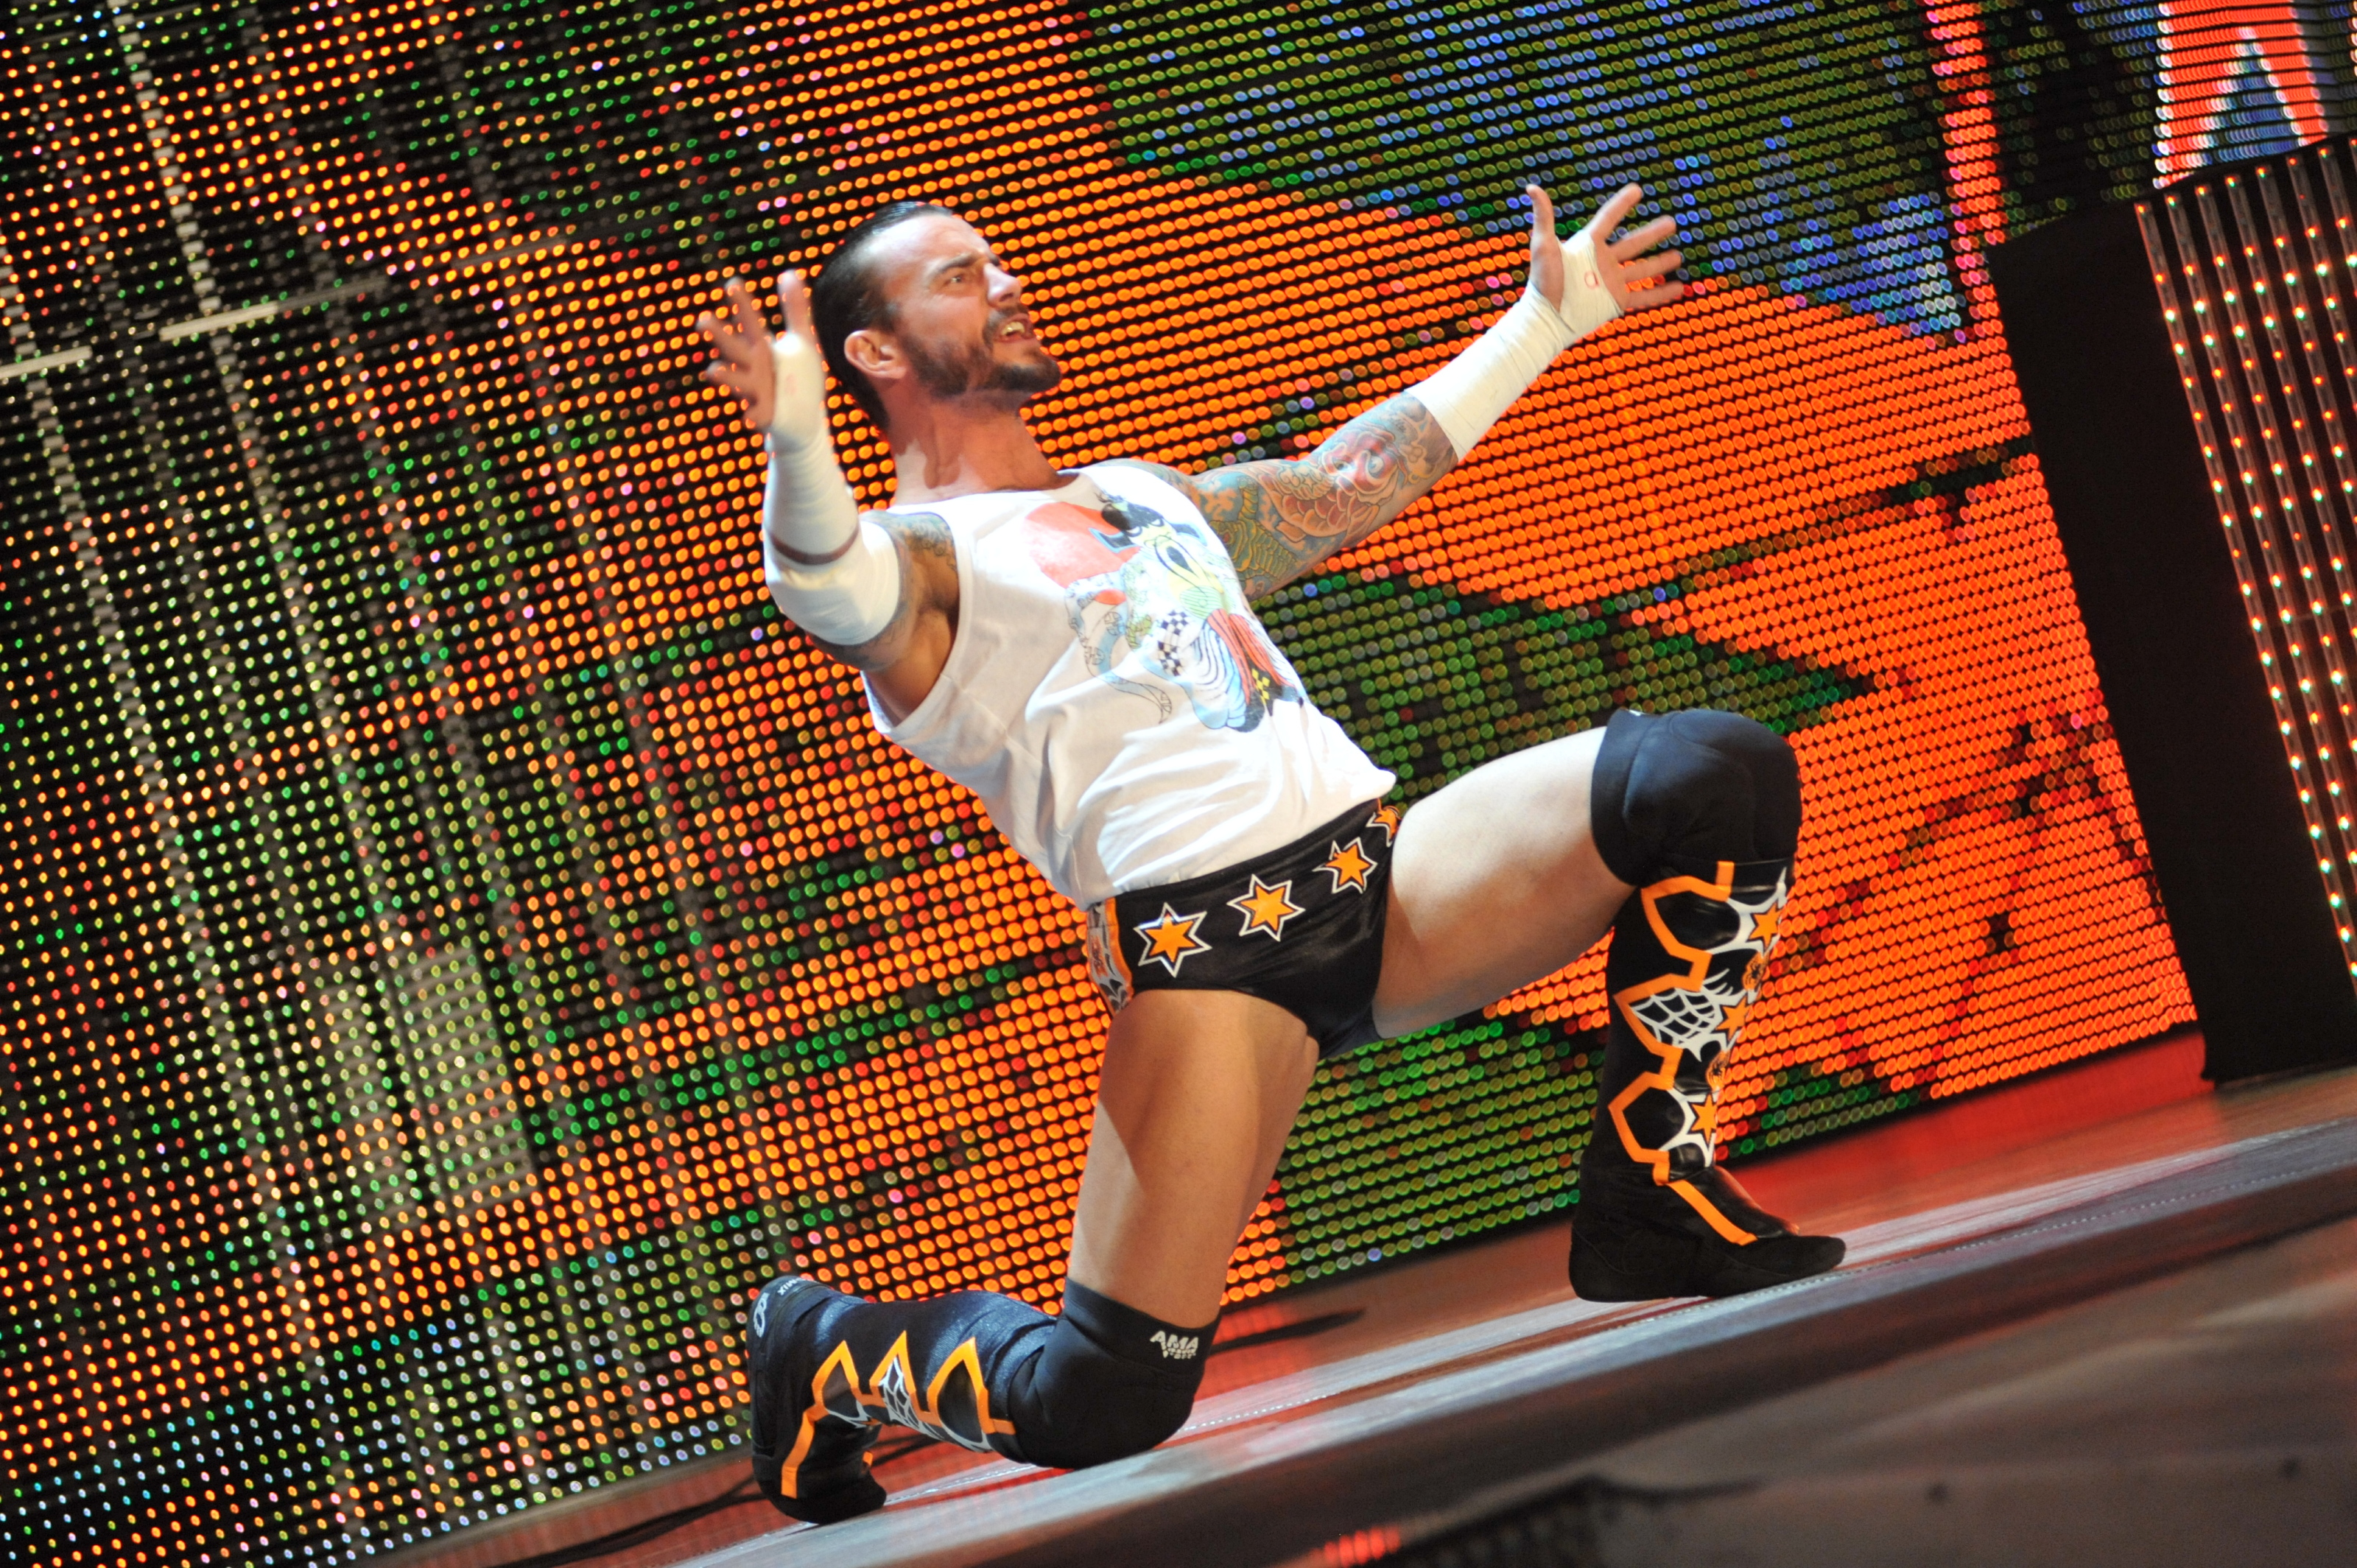 CM Punk Teases His Wrestling Gear For AEW All Out (Videos)